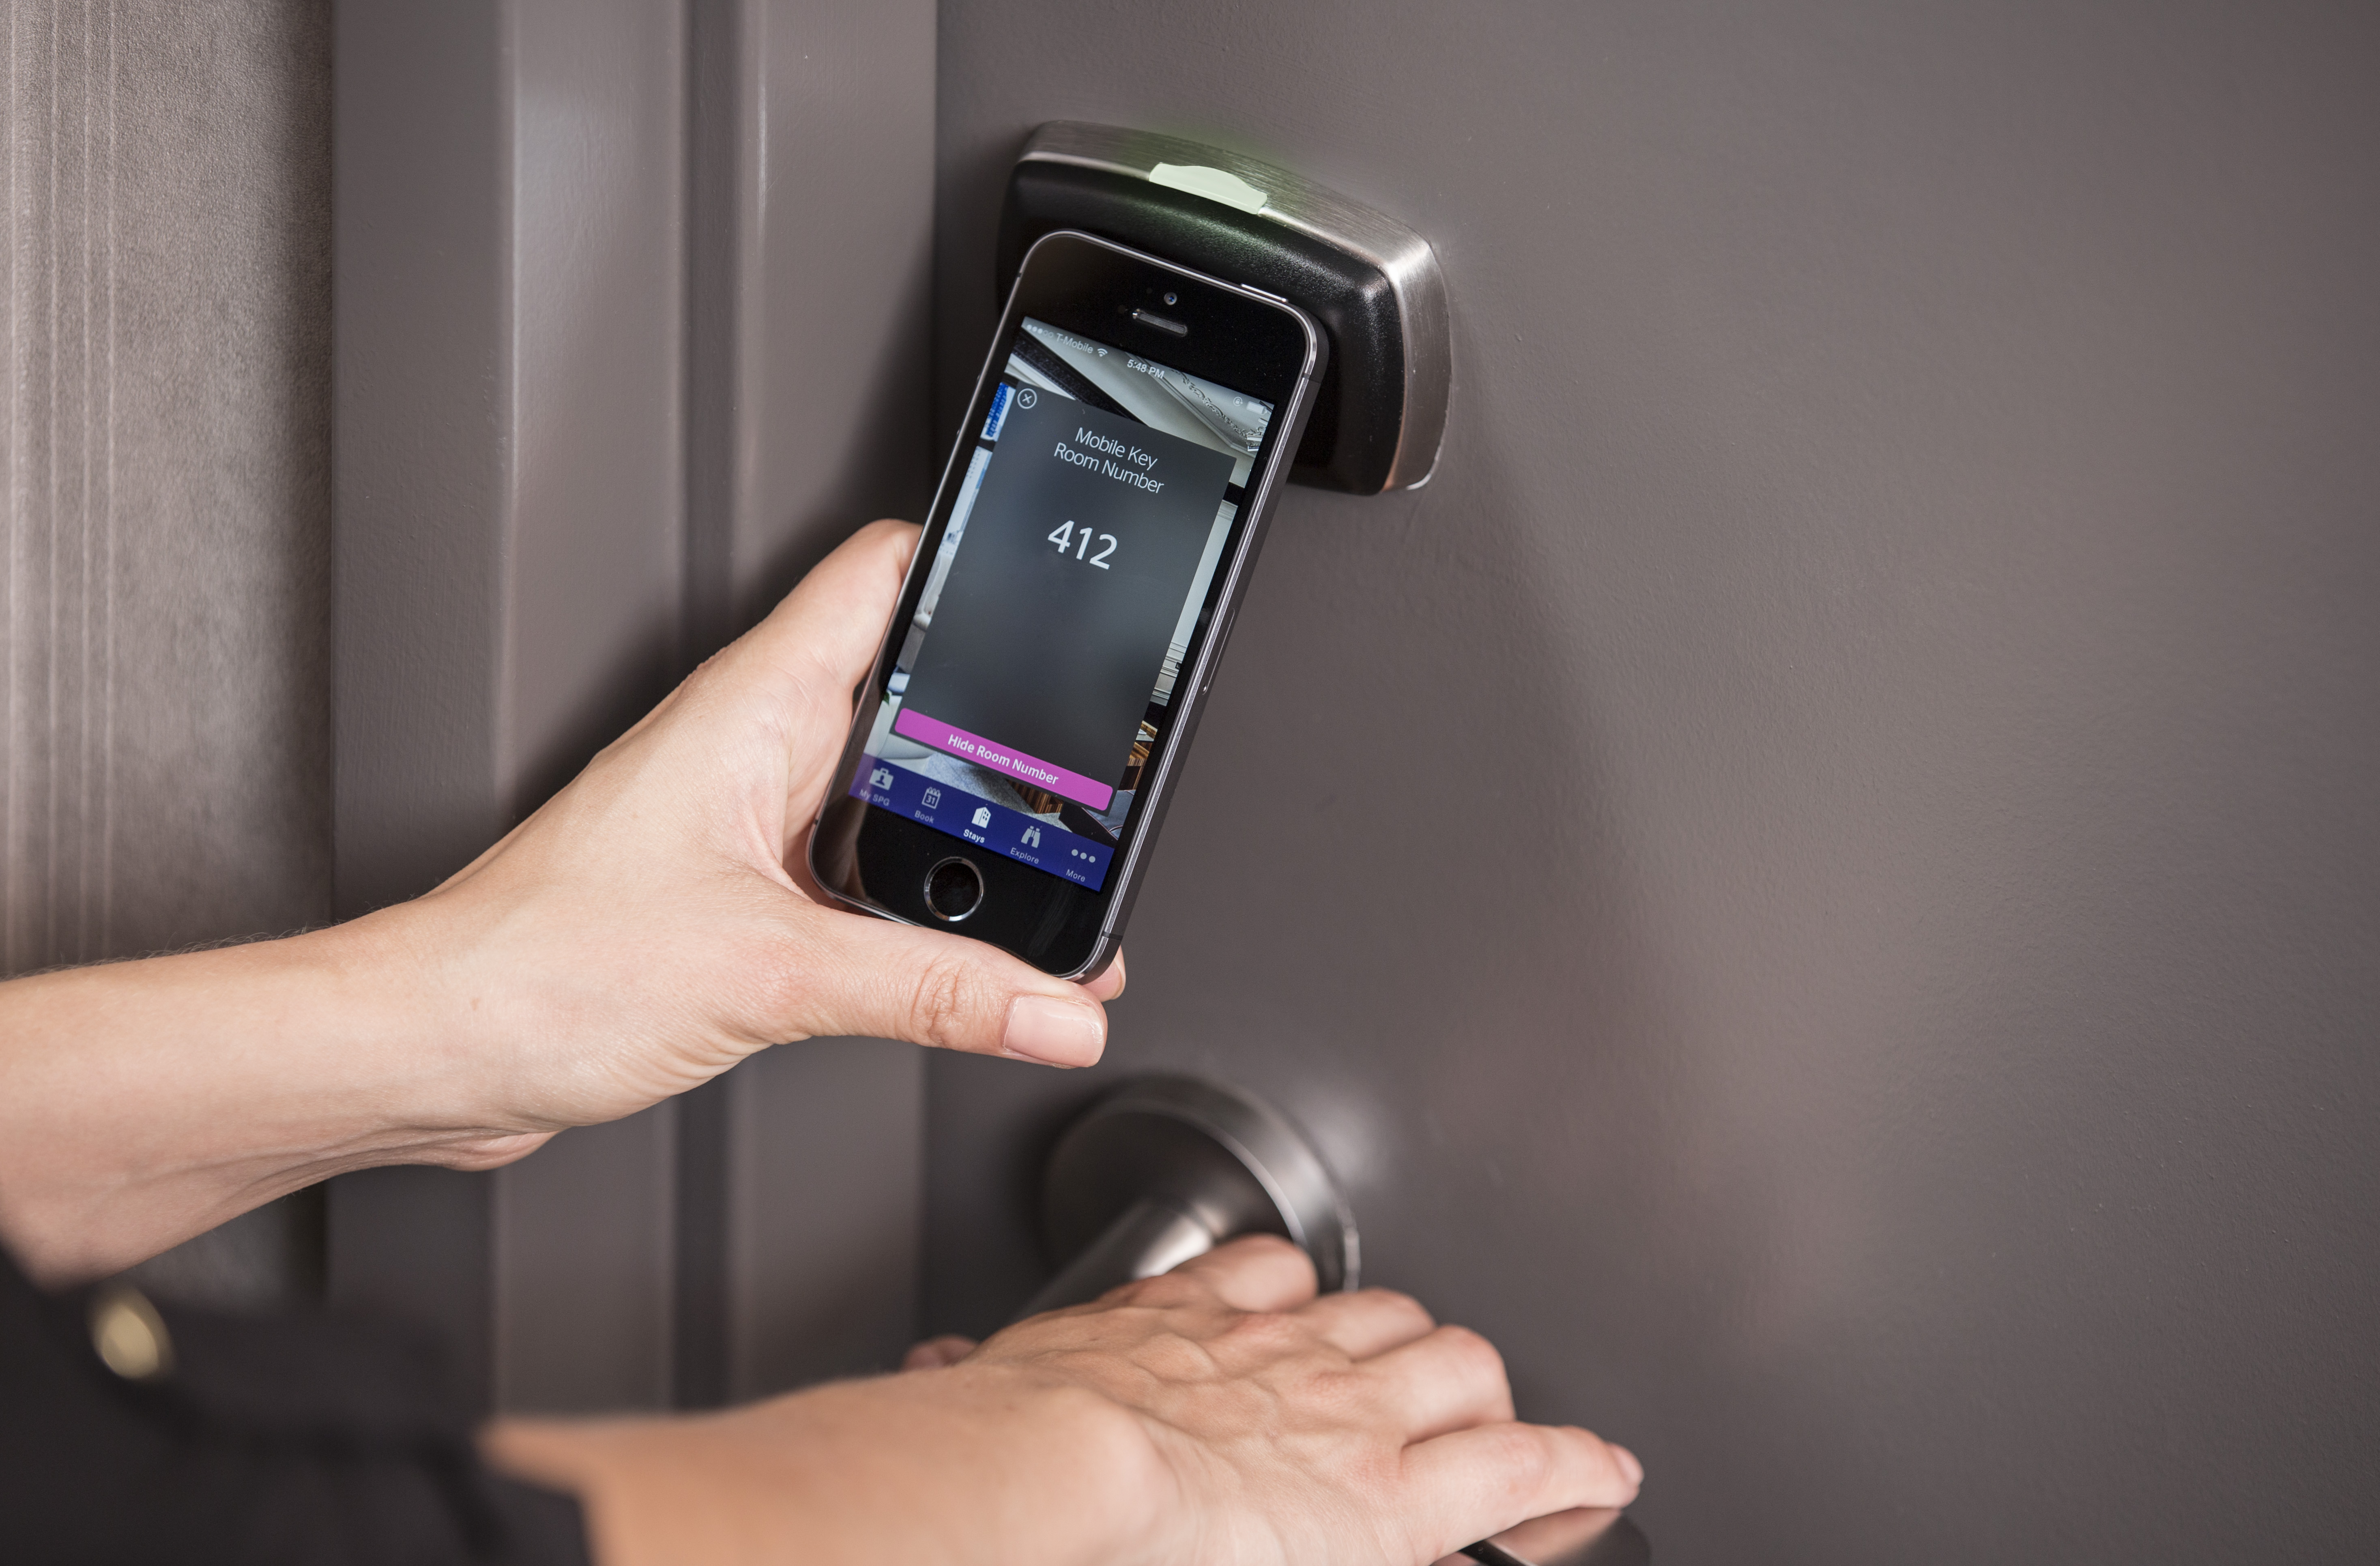 Smartphone used to open hotel room.